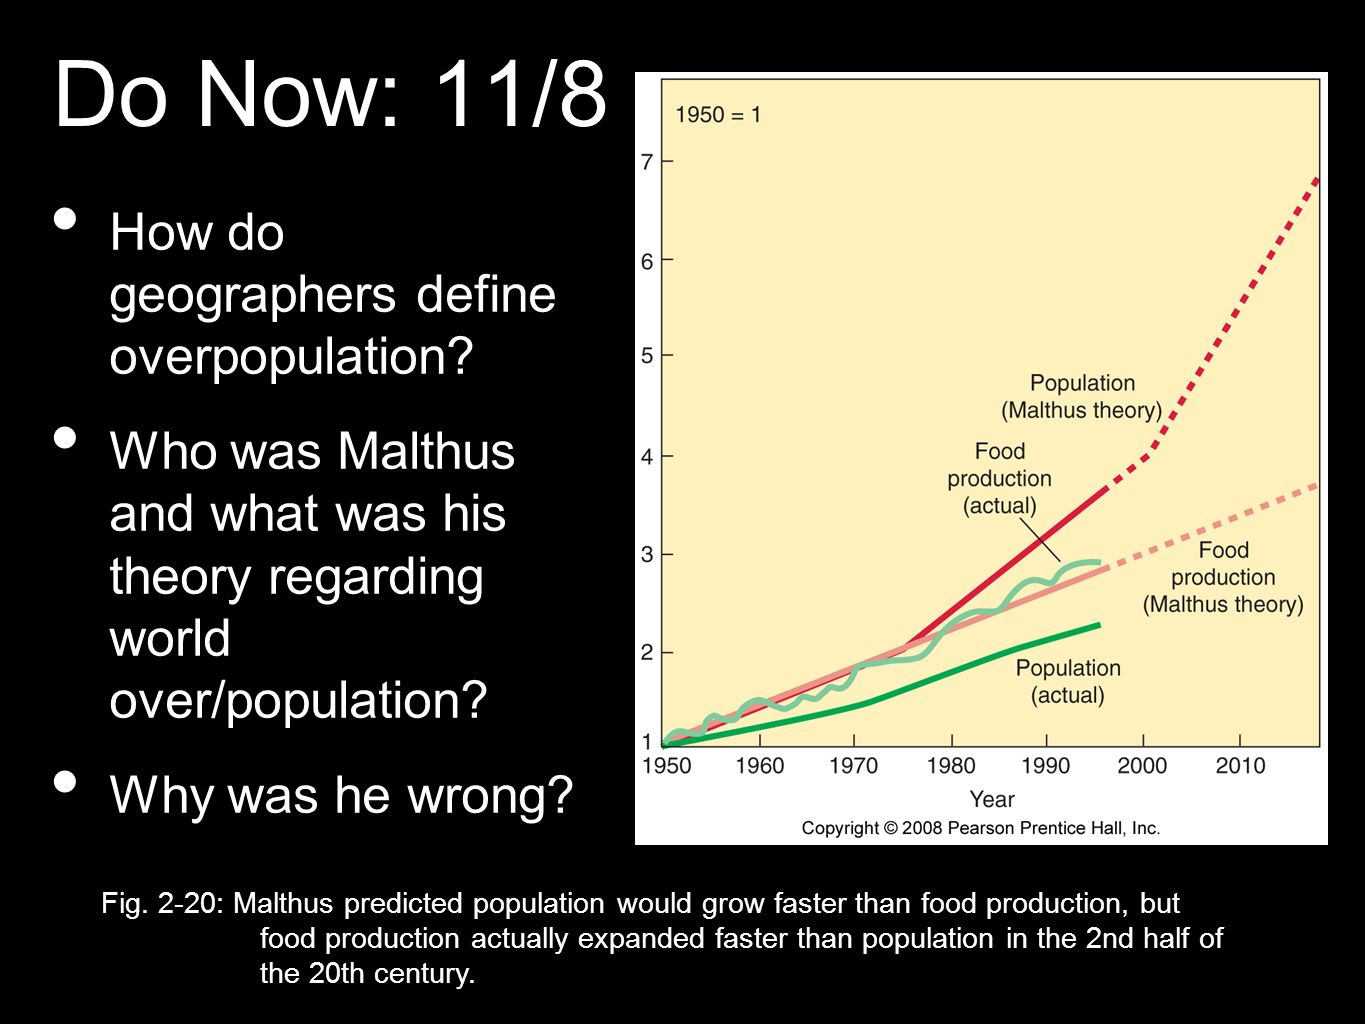 Do Now: 11/8 How do geographers define overpopulation